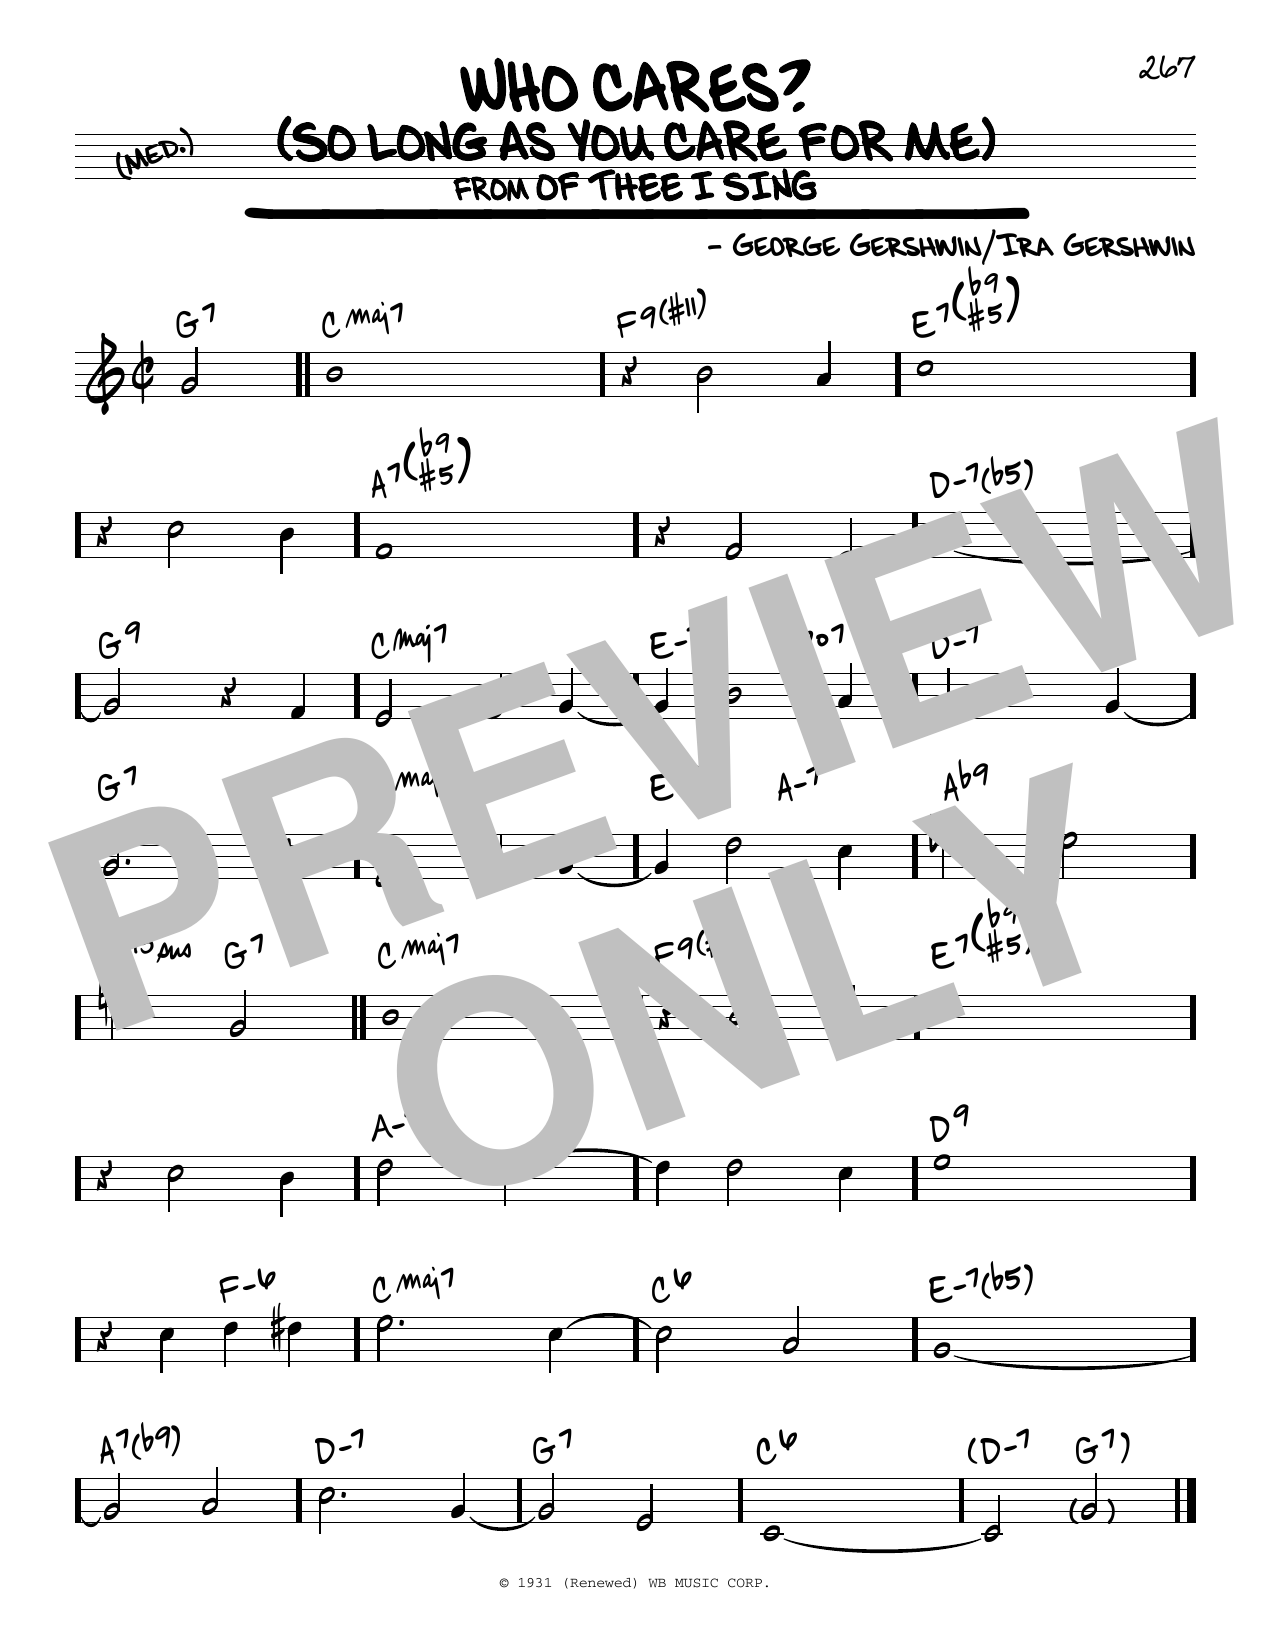 Who Cares? (So Long As You Care For Me) Sheet Music